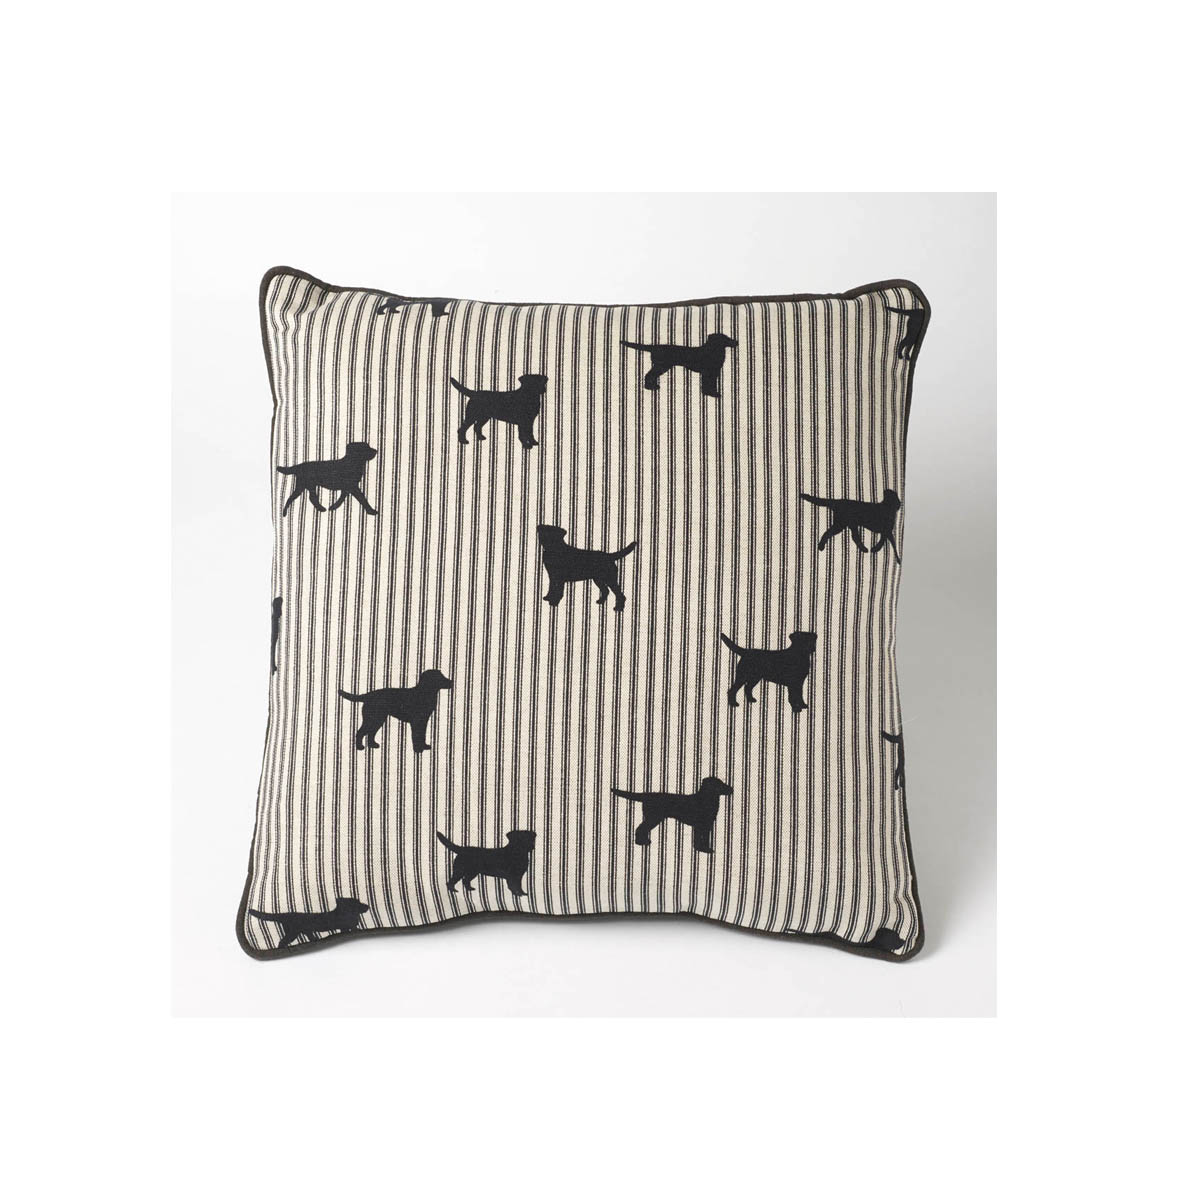 Piped-Labrador-cushion-wallpaper-wp428433